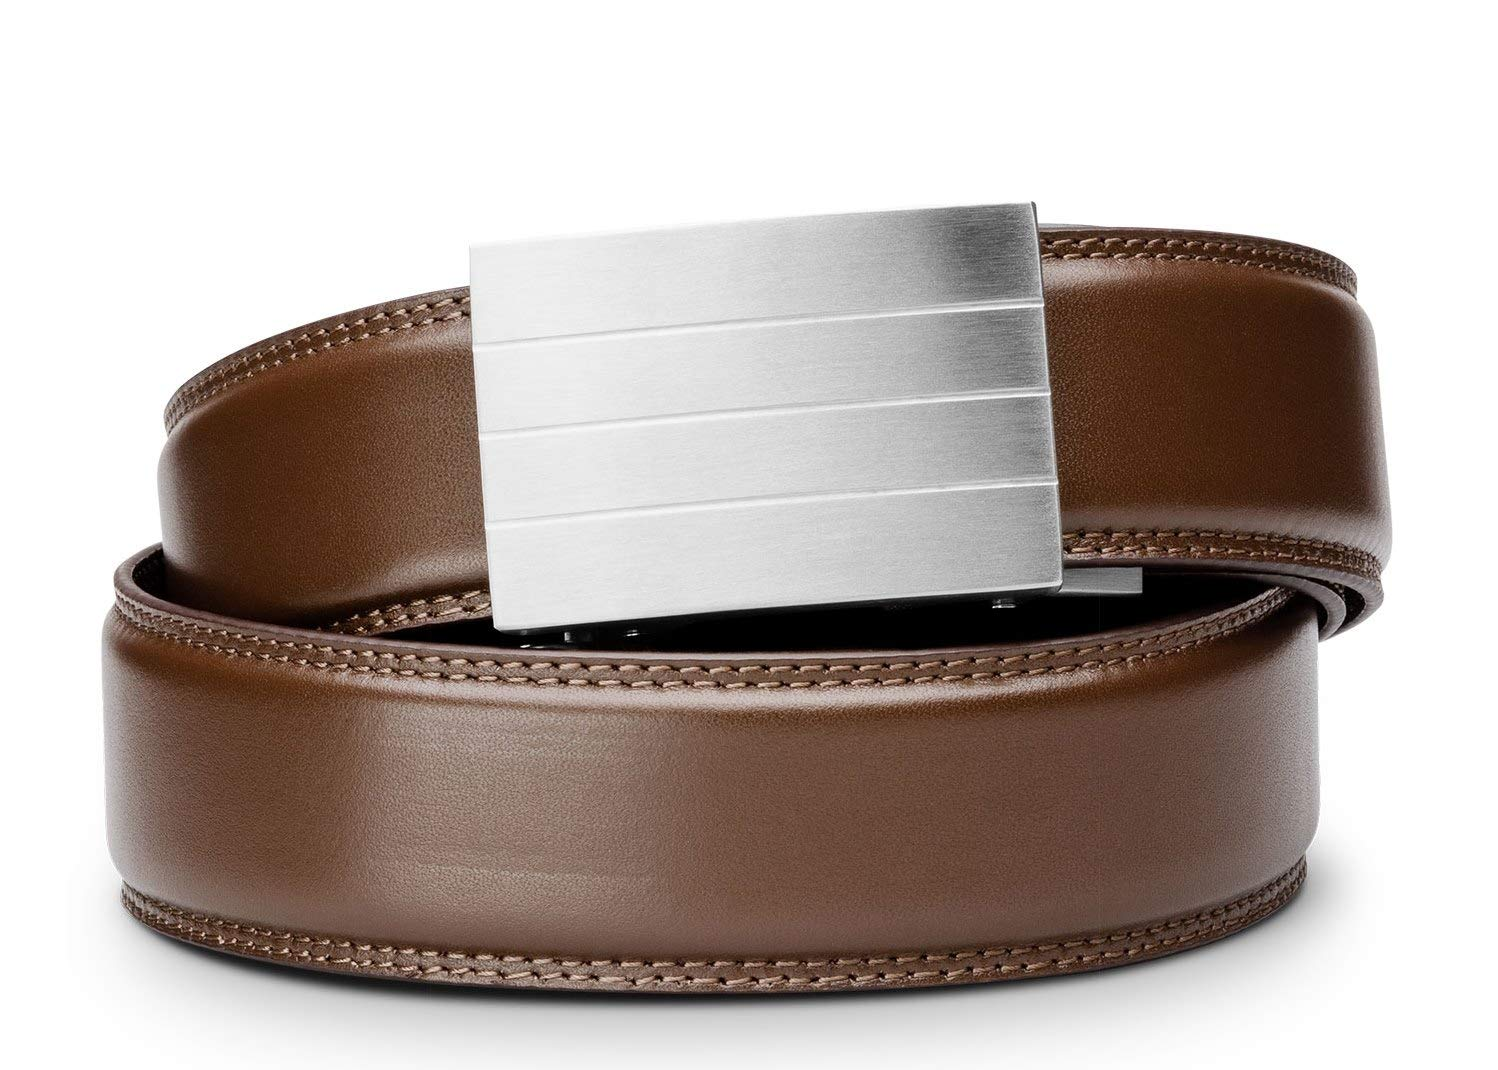 Kore Men S Full Grain Leather Track Belts Evolve Stainless Steel Buckle Account & lists account returns & orders. kore men s full grain leather track belts evolve stainless steel buckle